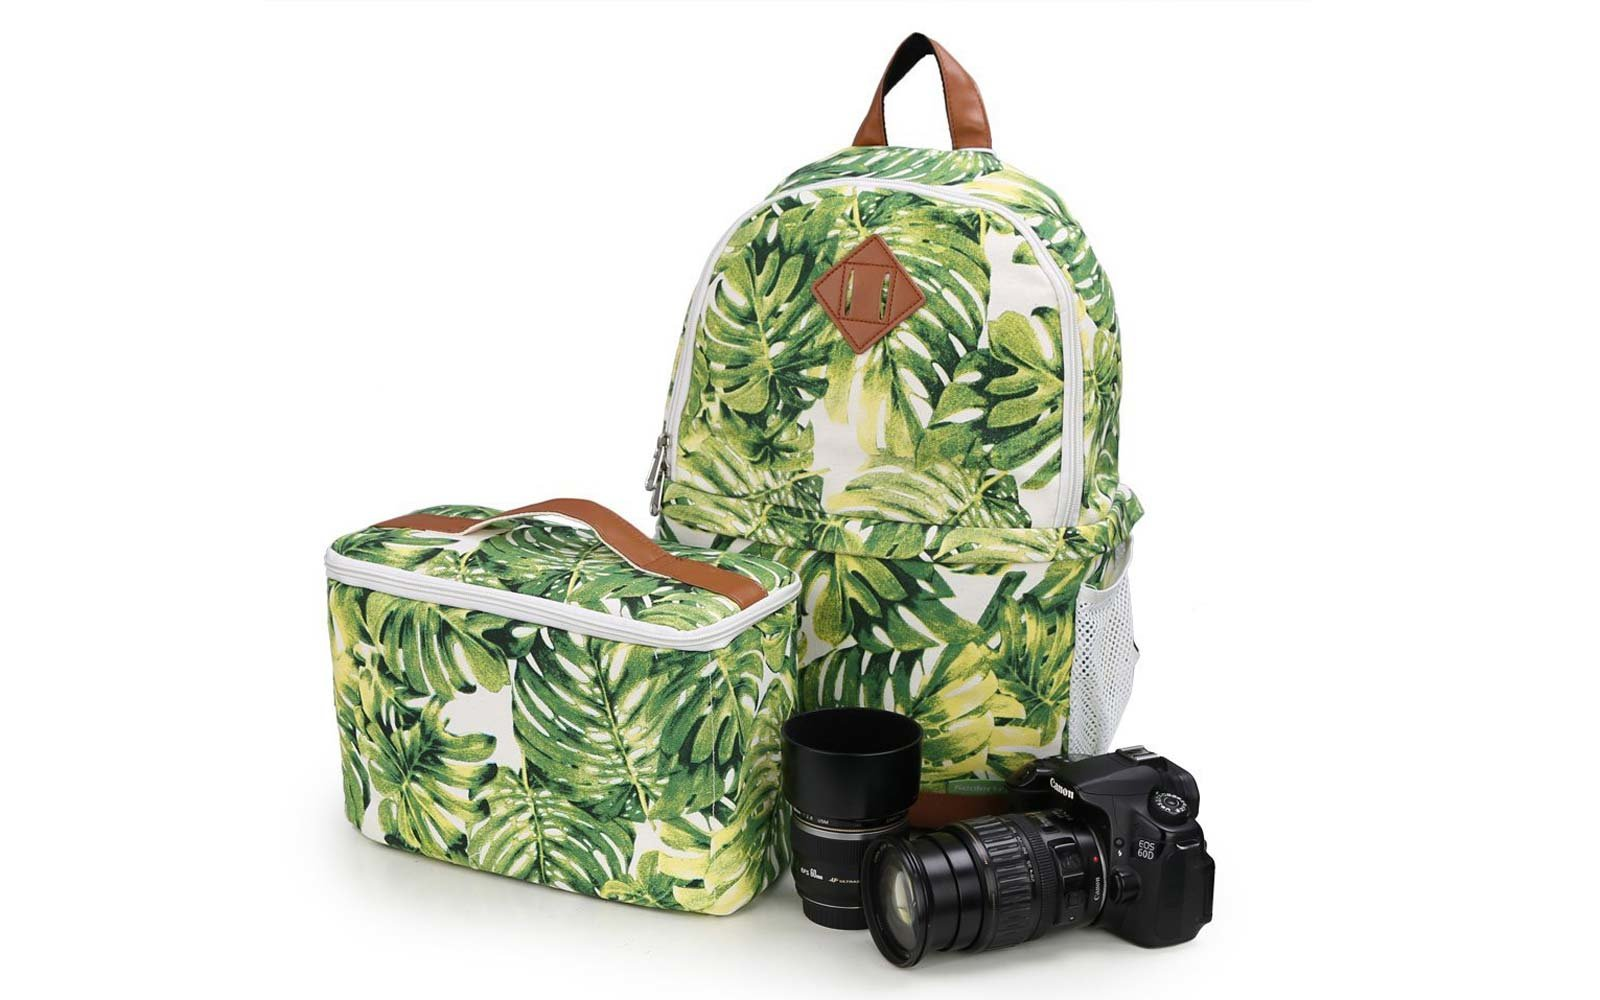 Camera Backpack in palm print